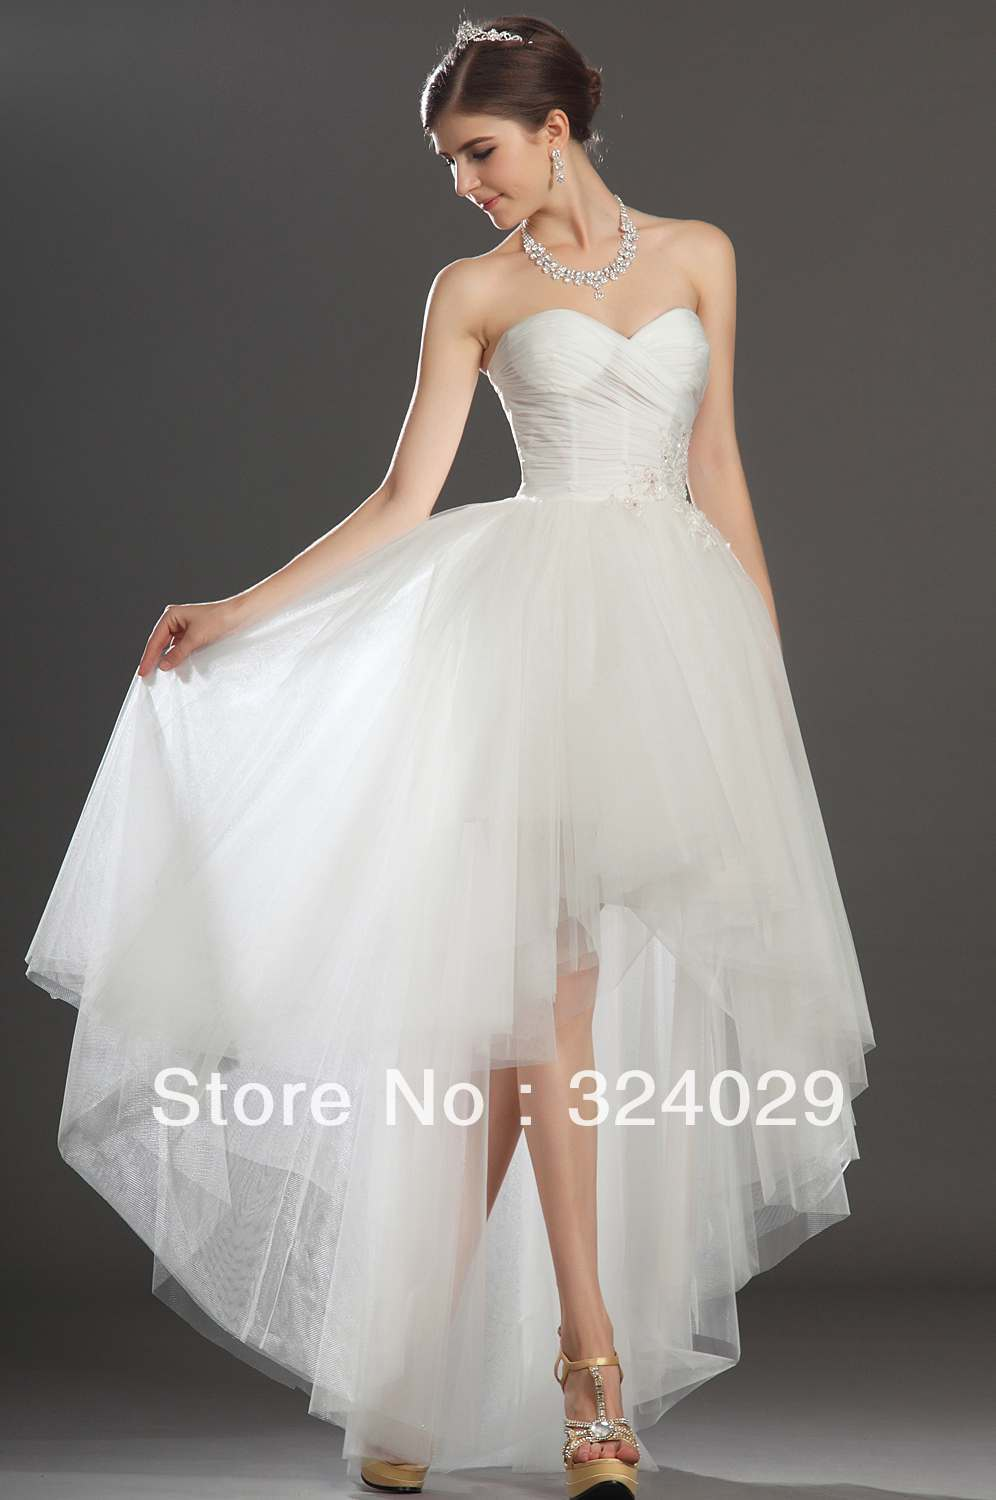 Freeshipping fantastic sweetheart high low white tulle Dresses for wedding reception